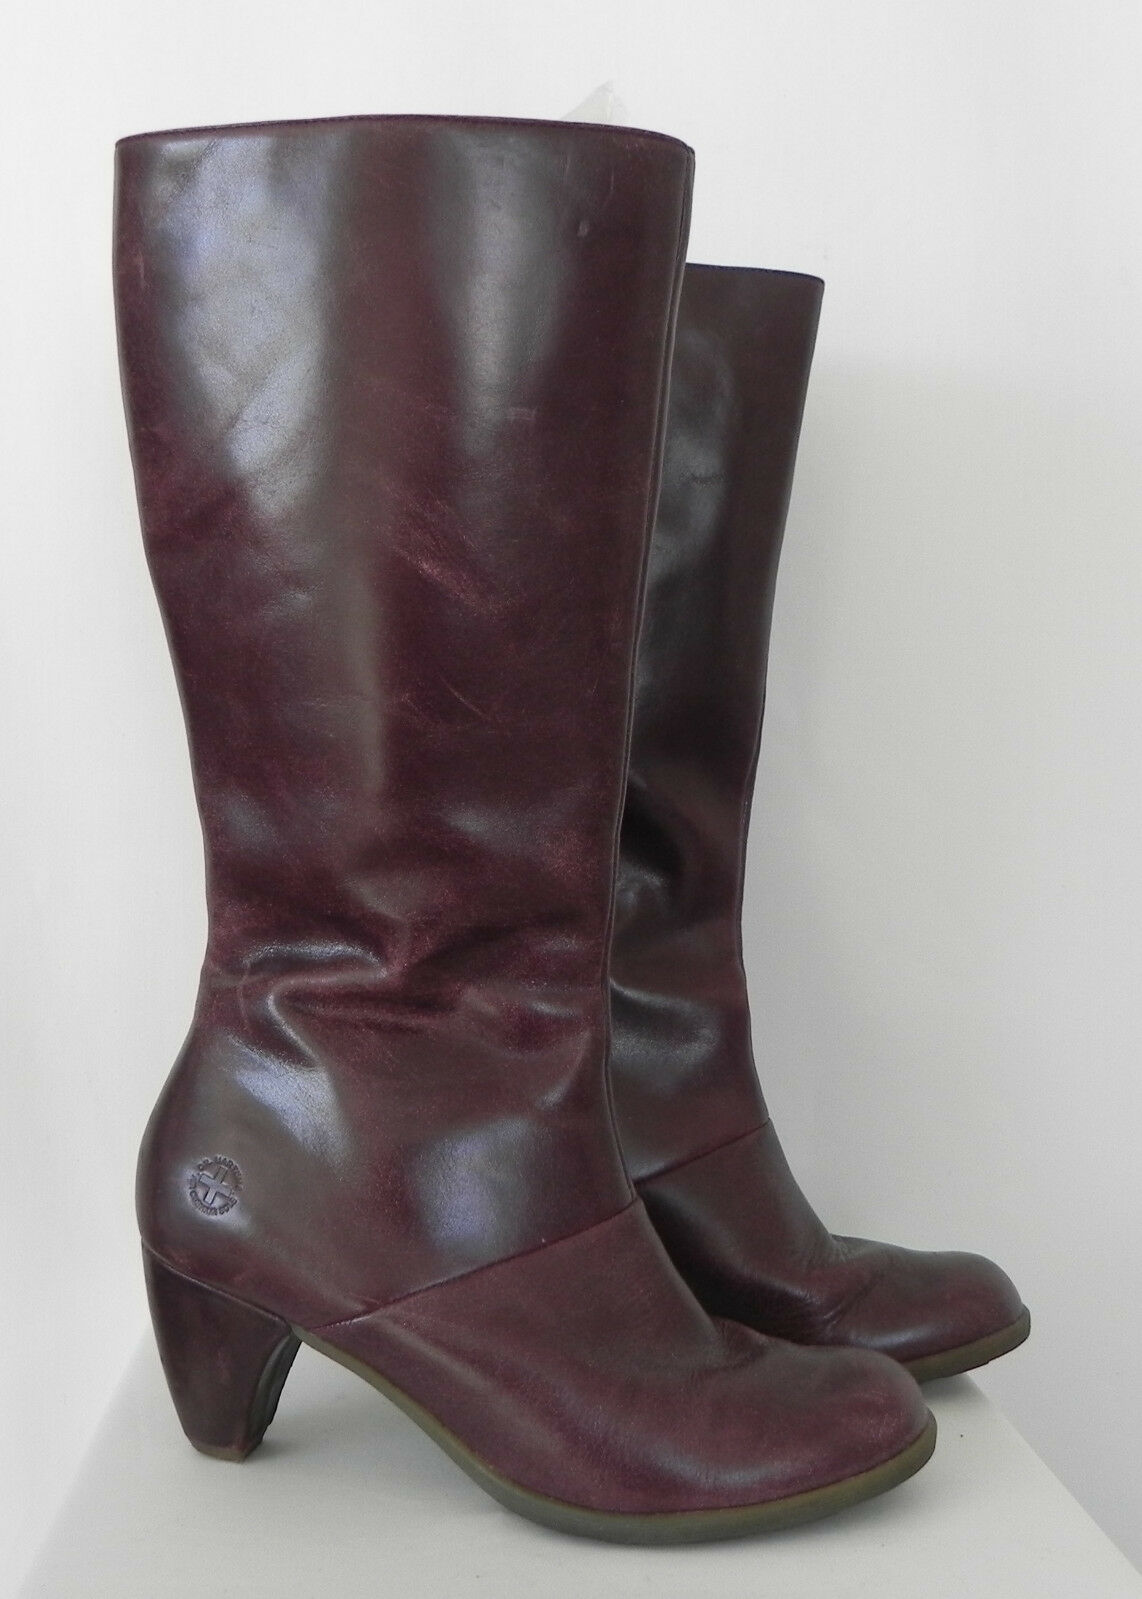 Dr. Martens Knee High Boots Leather Distressed Burgandy Full Zippered Size 8 L